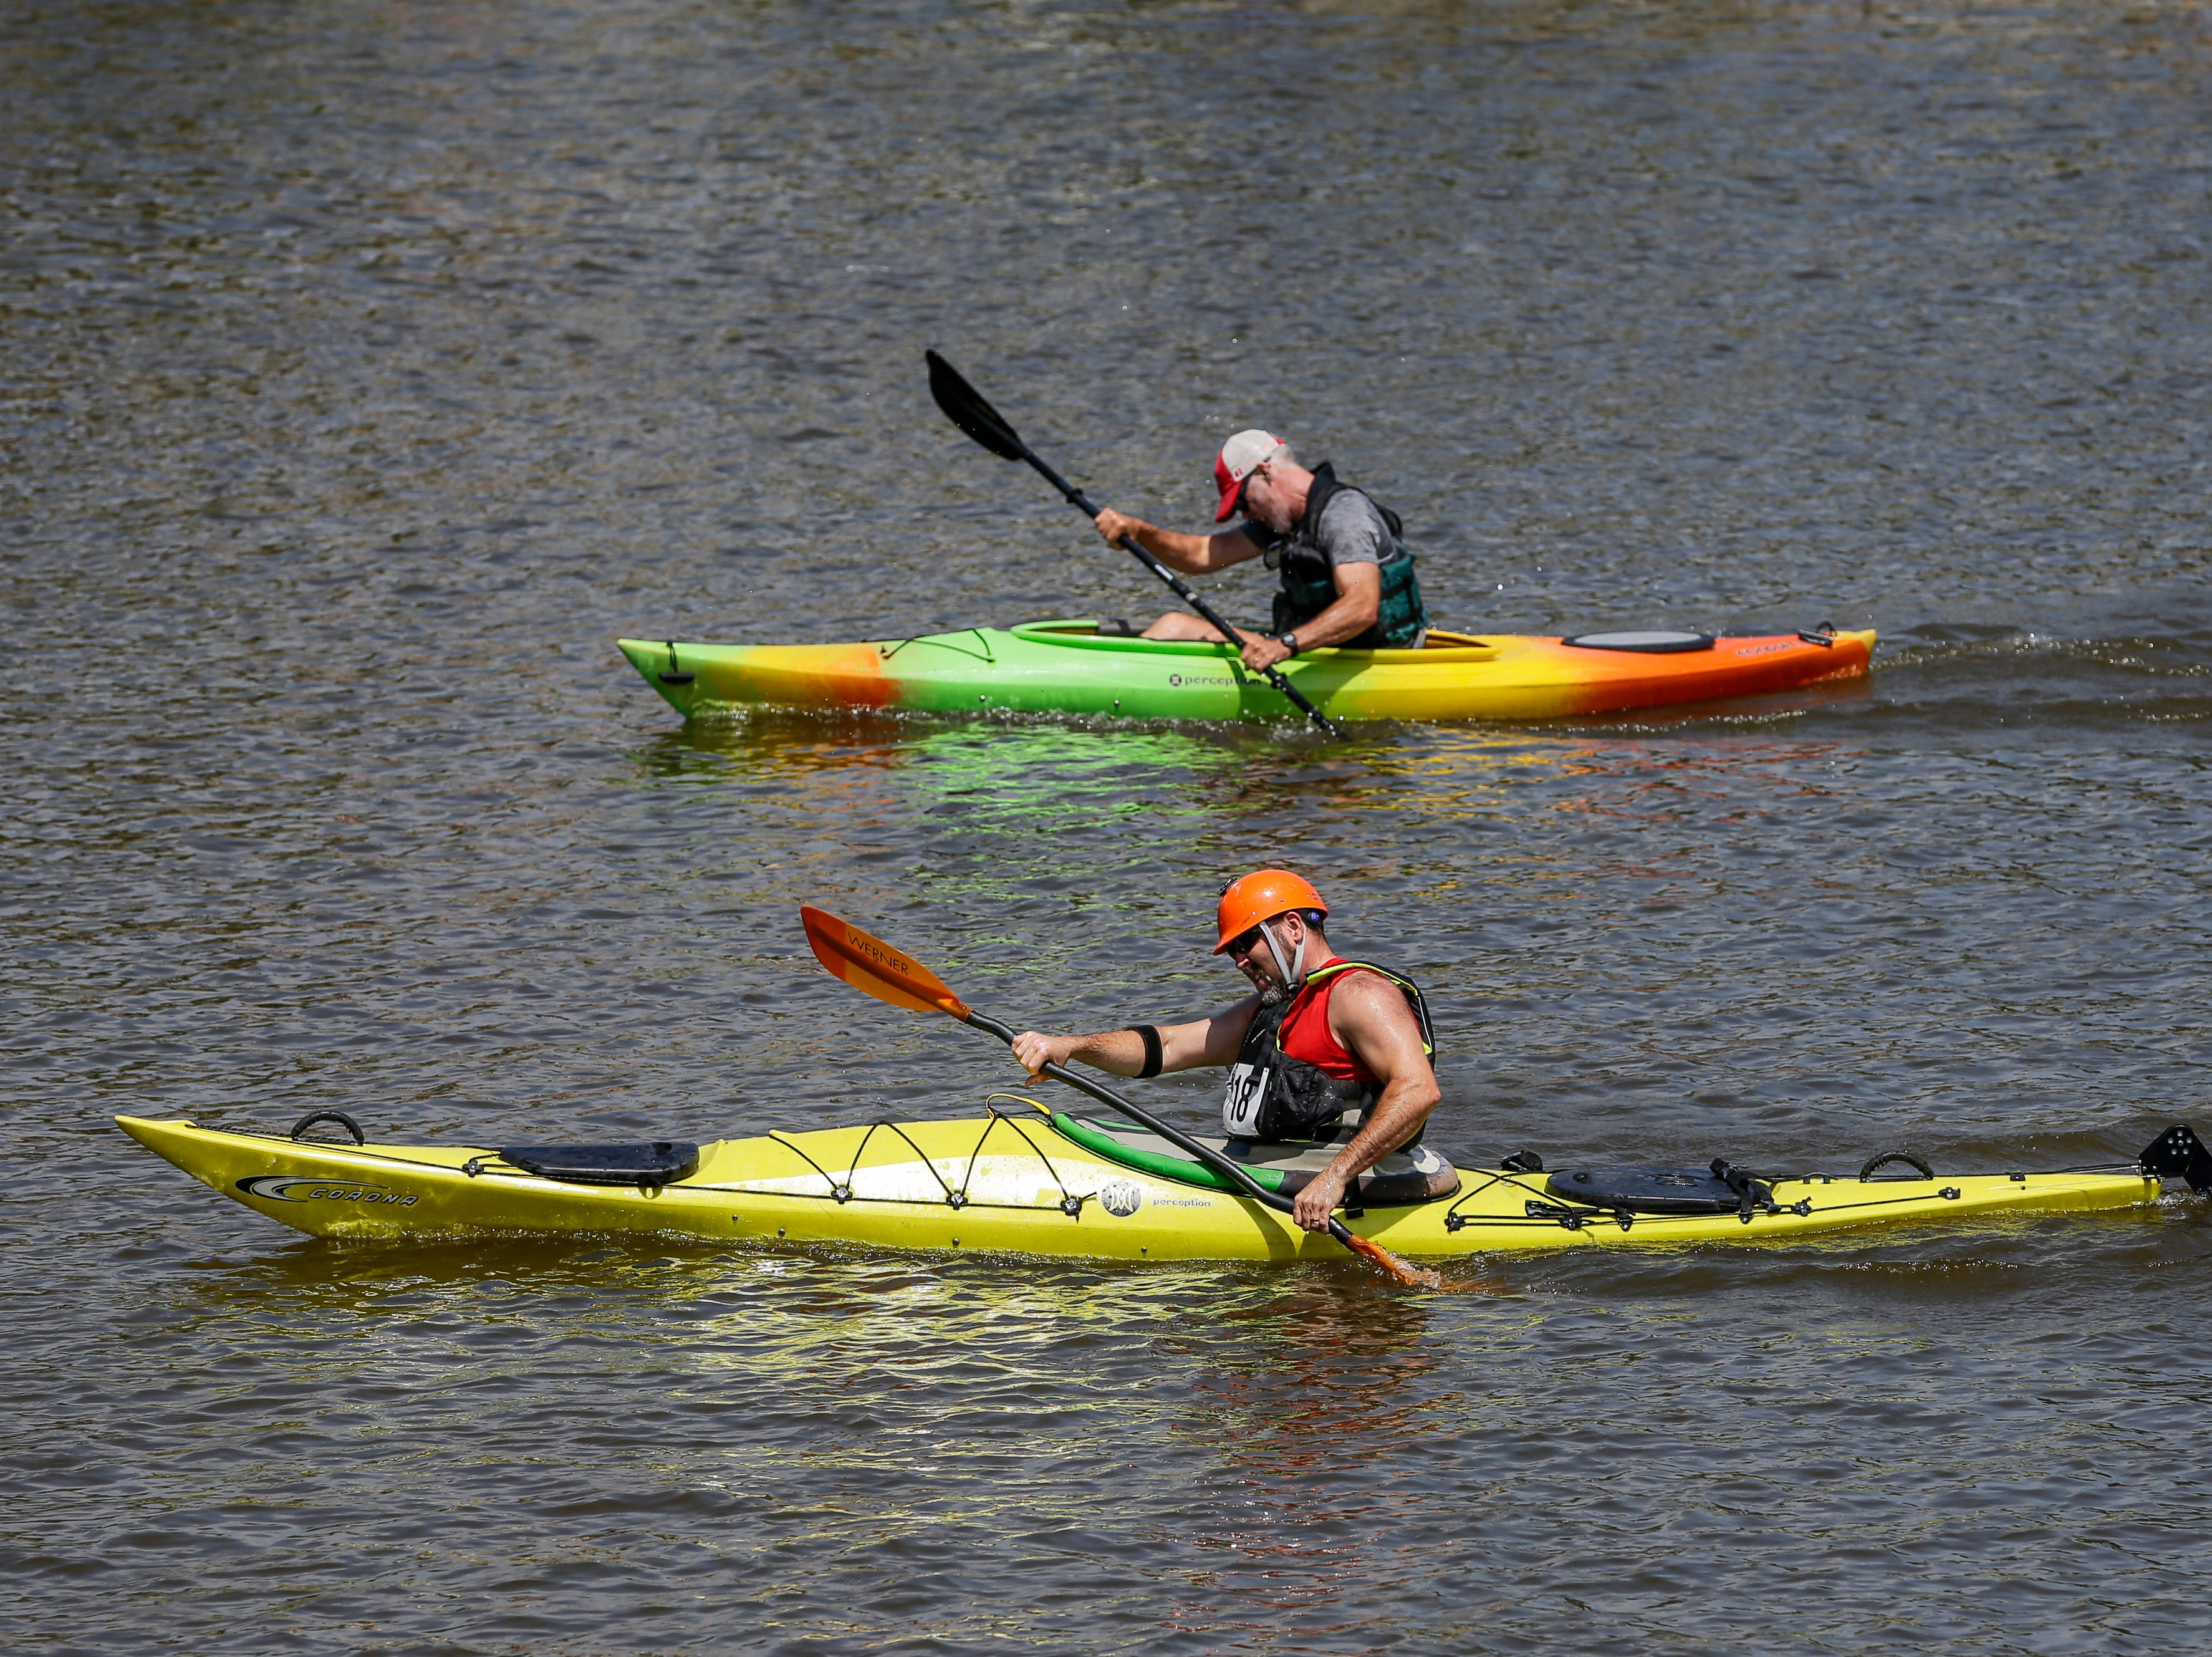 Two men battle it out in the last stretch of a kayak race on the Manitowoc River during Subfest Saturday, July 14, 2018, in Manitowoc, Wis. Josh Clark/USA TODAY NETWORK-Wisconsin